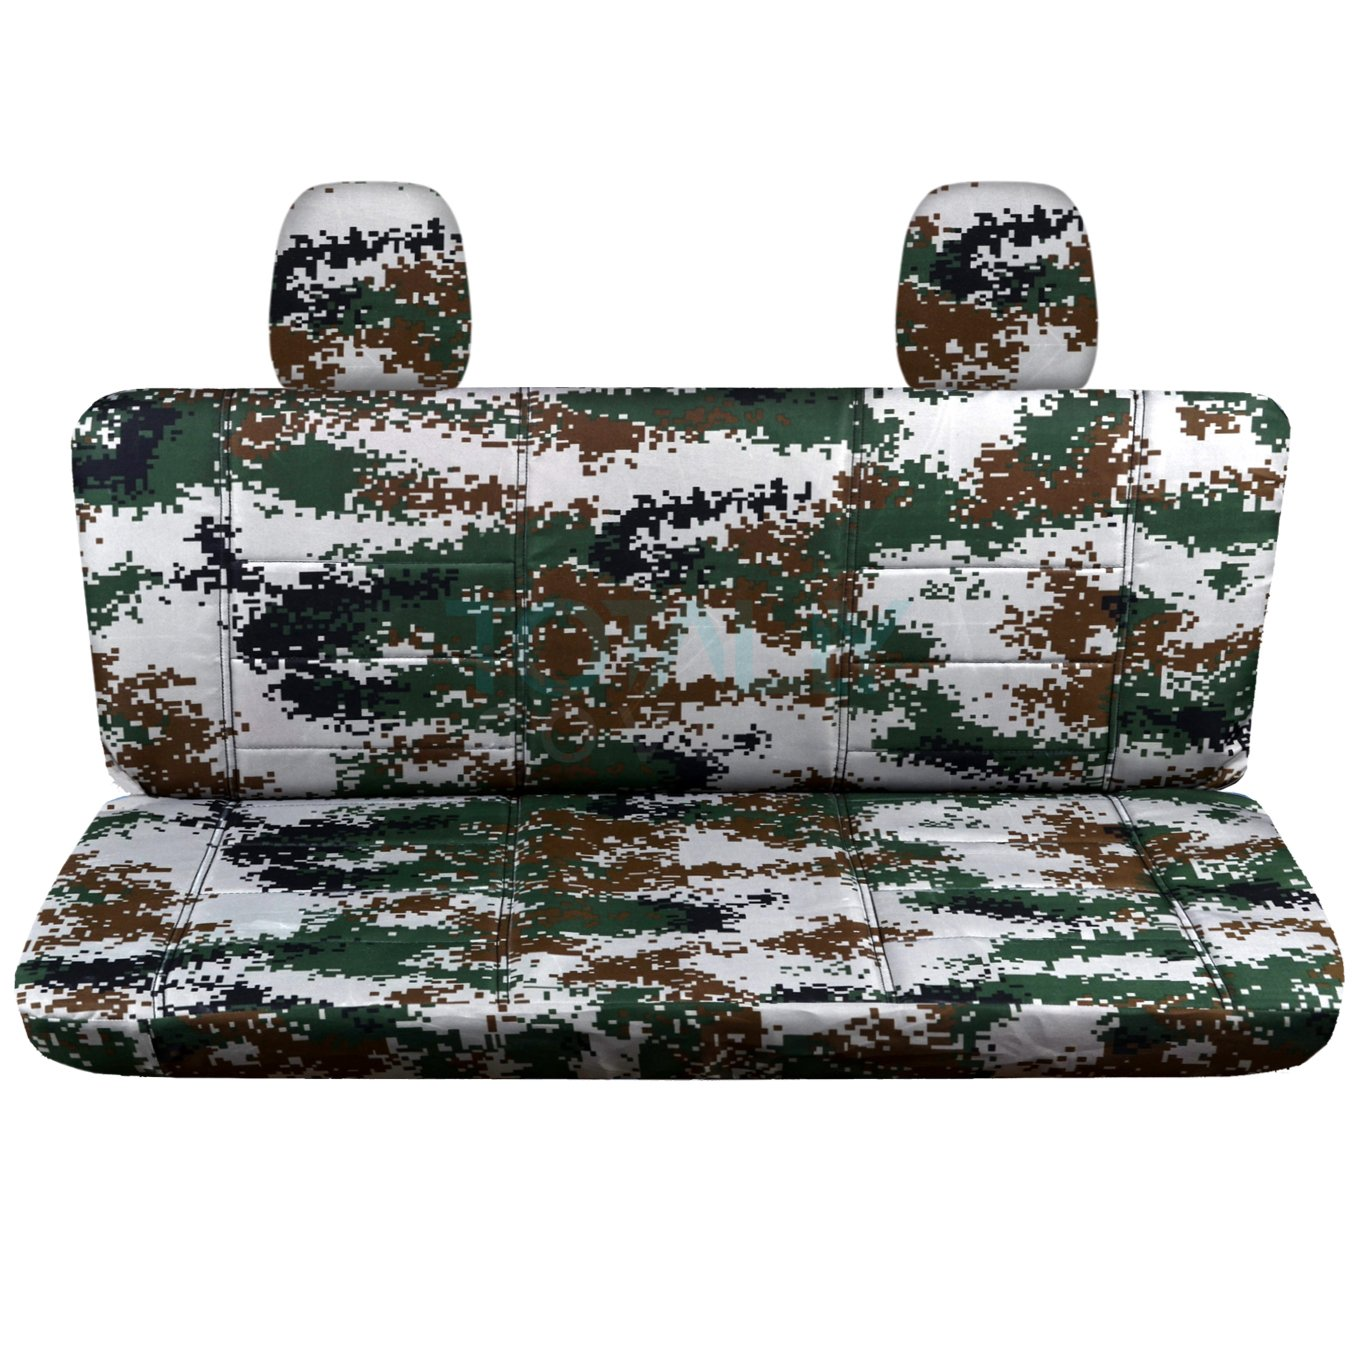 w//wo Center Armrest: Wetland Camouflage F-Series F150 Back w 2 Headrests 16 Prints Totally Covers Fits 2010 Ford F-150 SuperCab//SuperCrew Camo Truck Seat Covers Rear 60//40 Split Bench